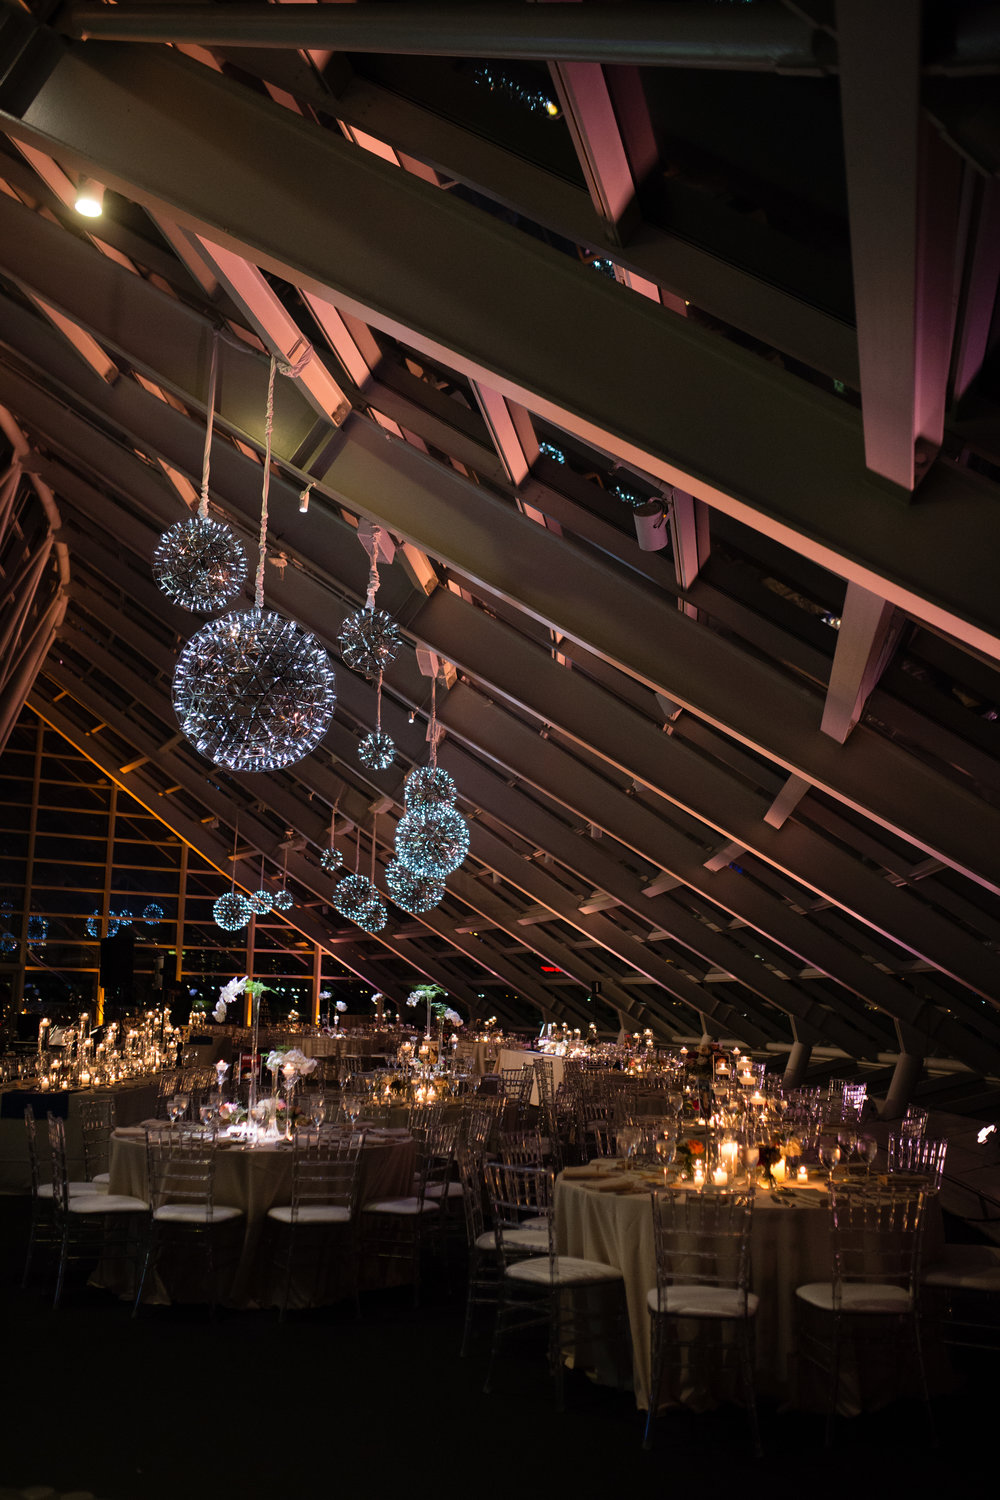 wedding reception at the adler planetarium